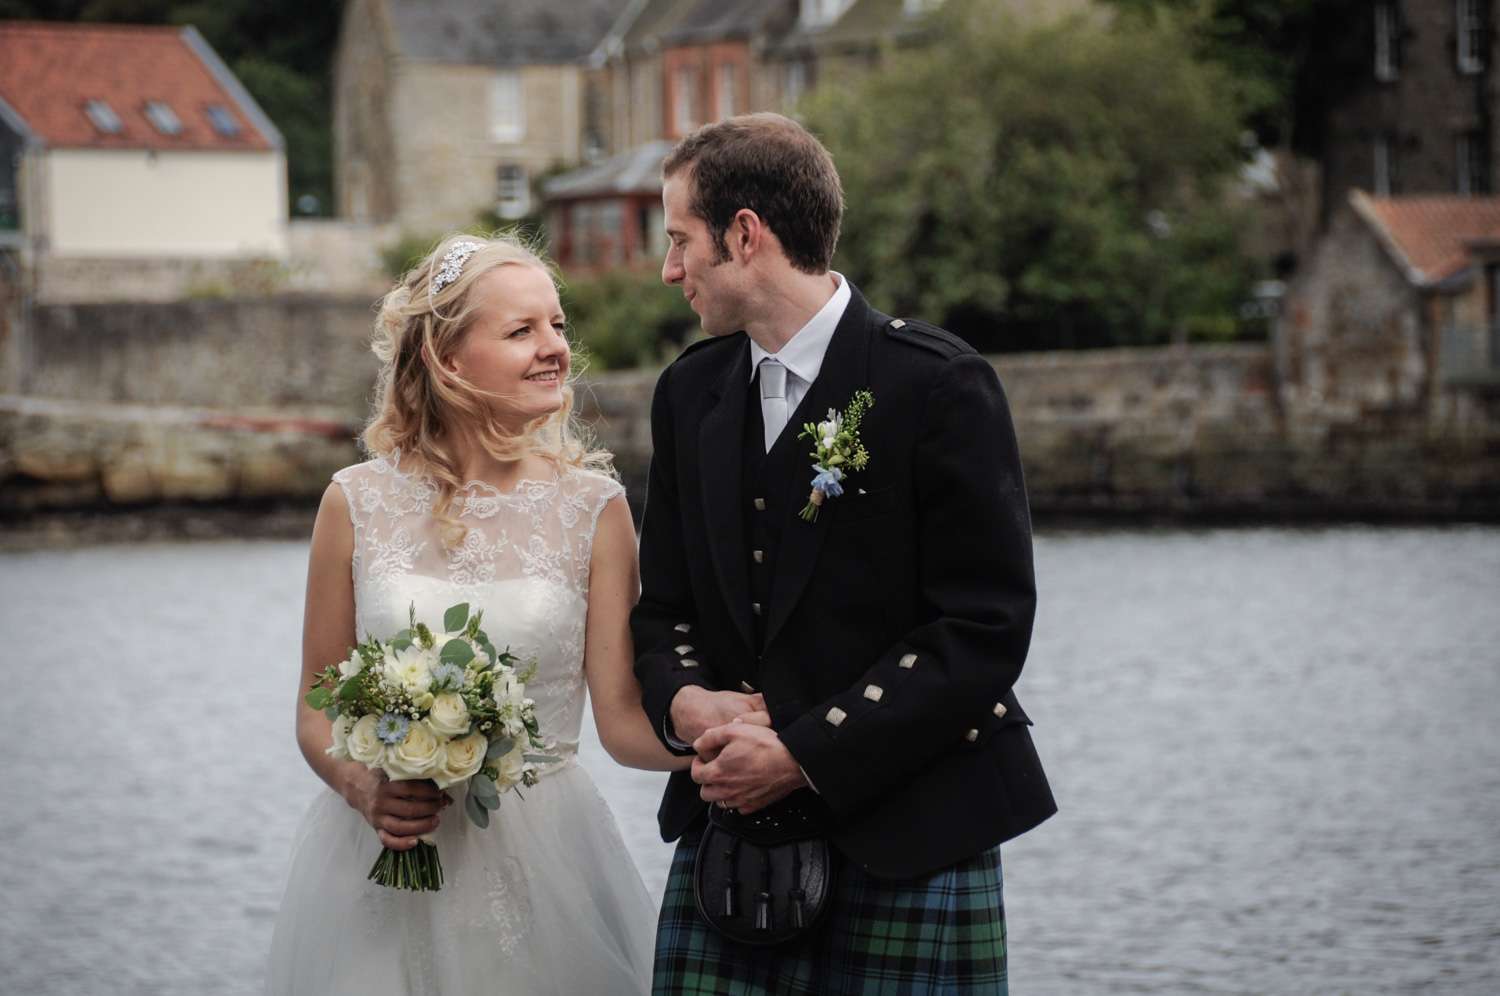 Chris & Emily - Thank you so much for the amazing photos they are perfect! Had an absolutely fab wedding day and it was great having Alison there to capture it!- Orocco Pier, South Queensferry, Edinburgh